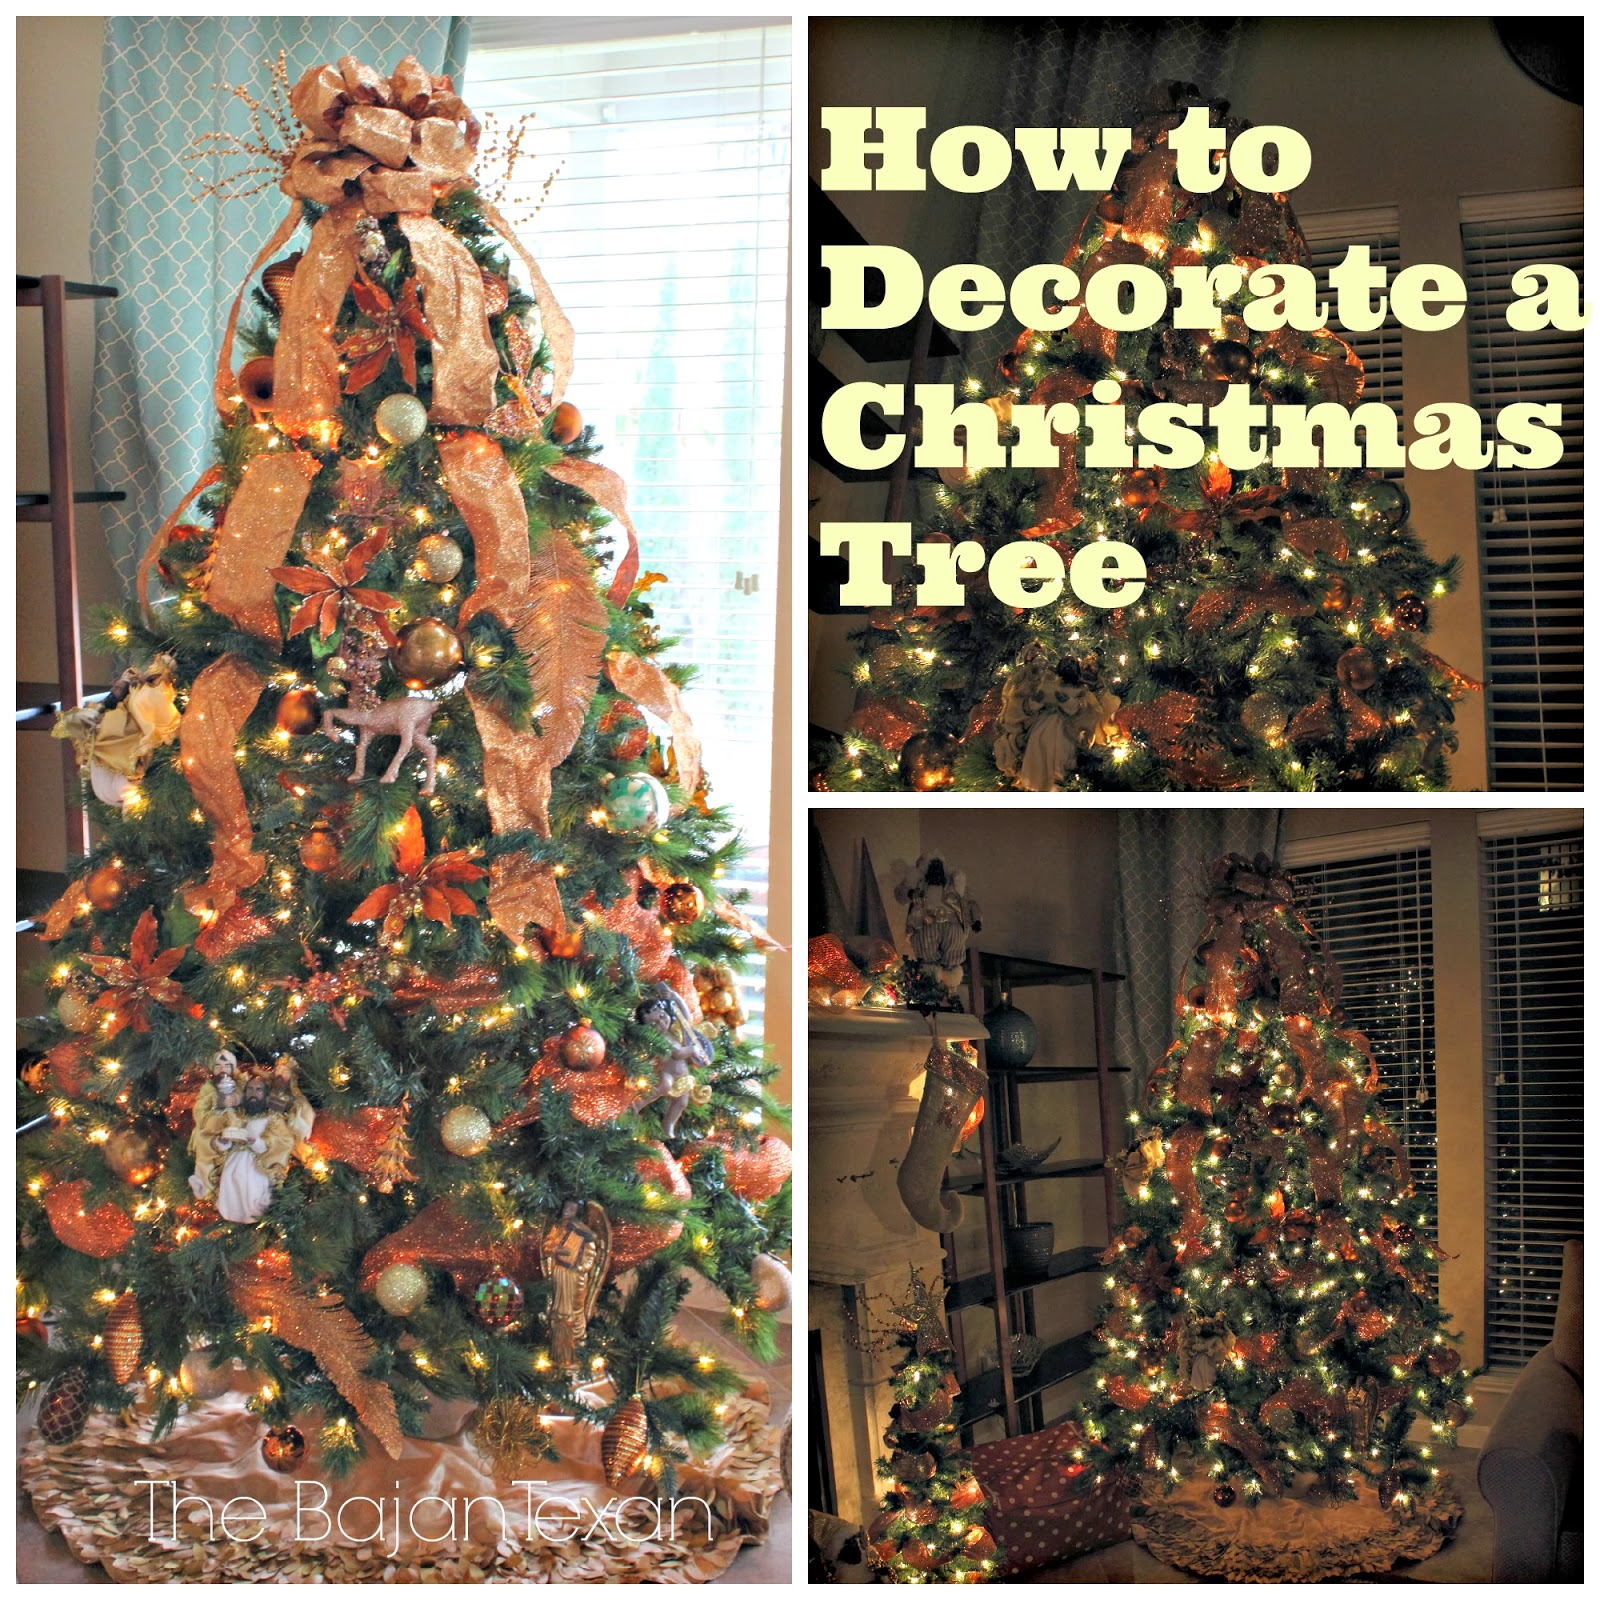 how to decorate a christmas tree check out these step by step pics - Ways To Decorate A Christmas Tree